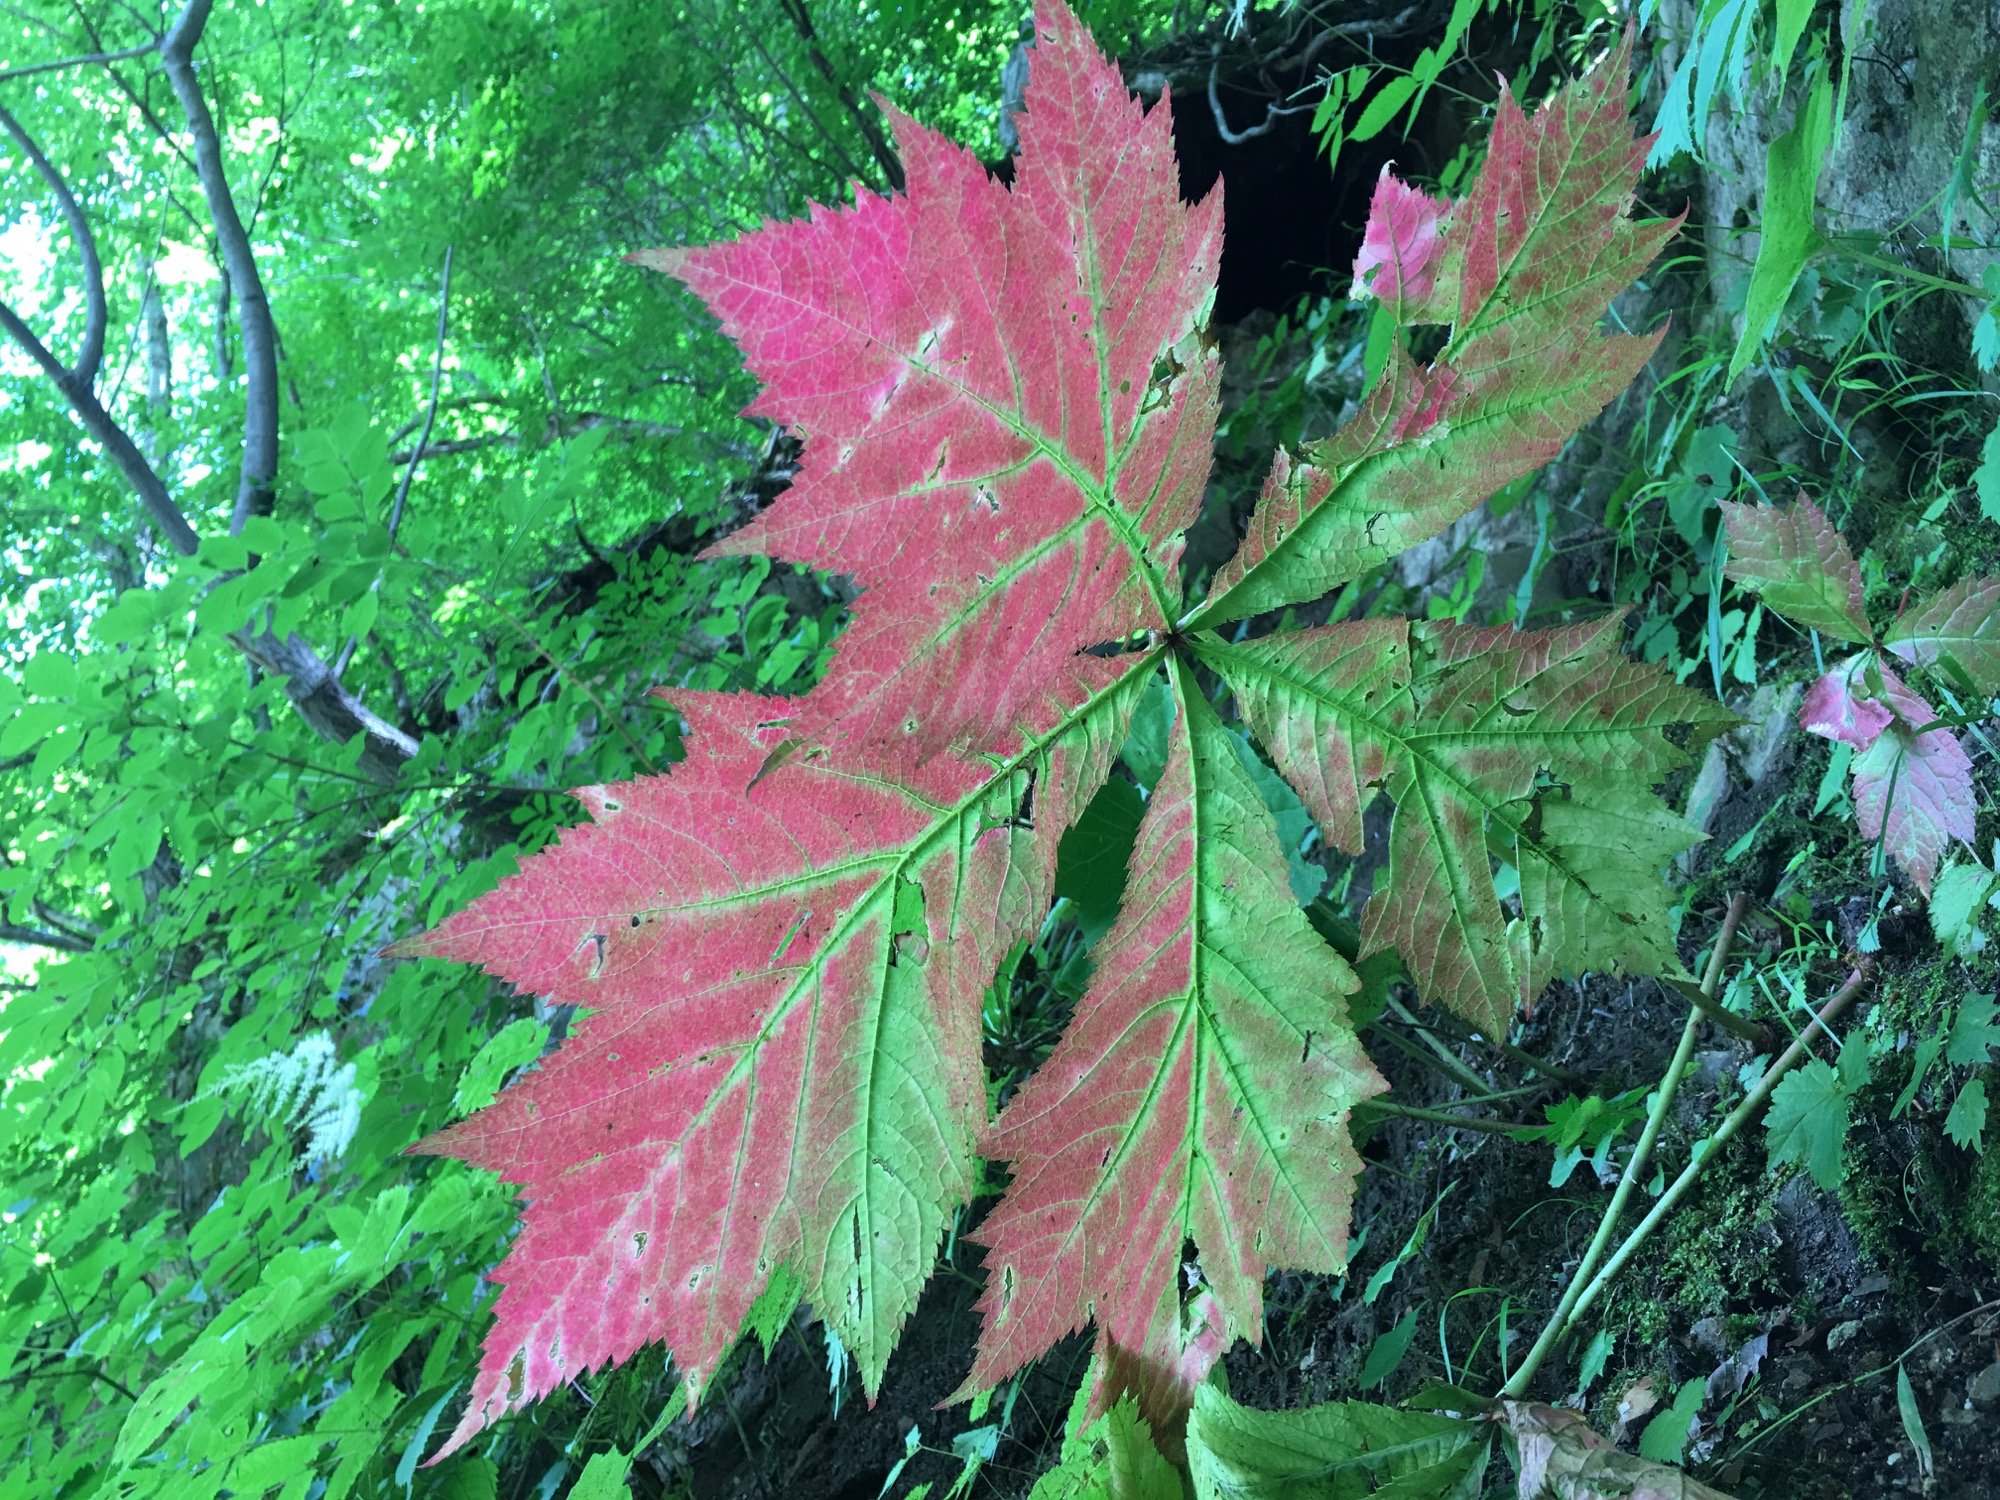 A rather large leaf turning from green to red